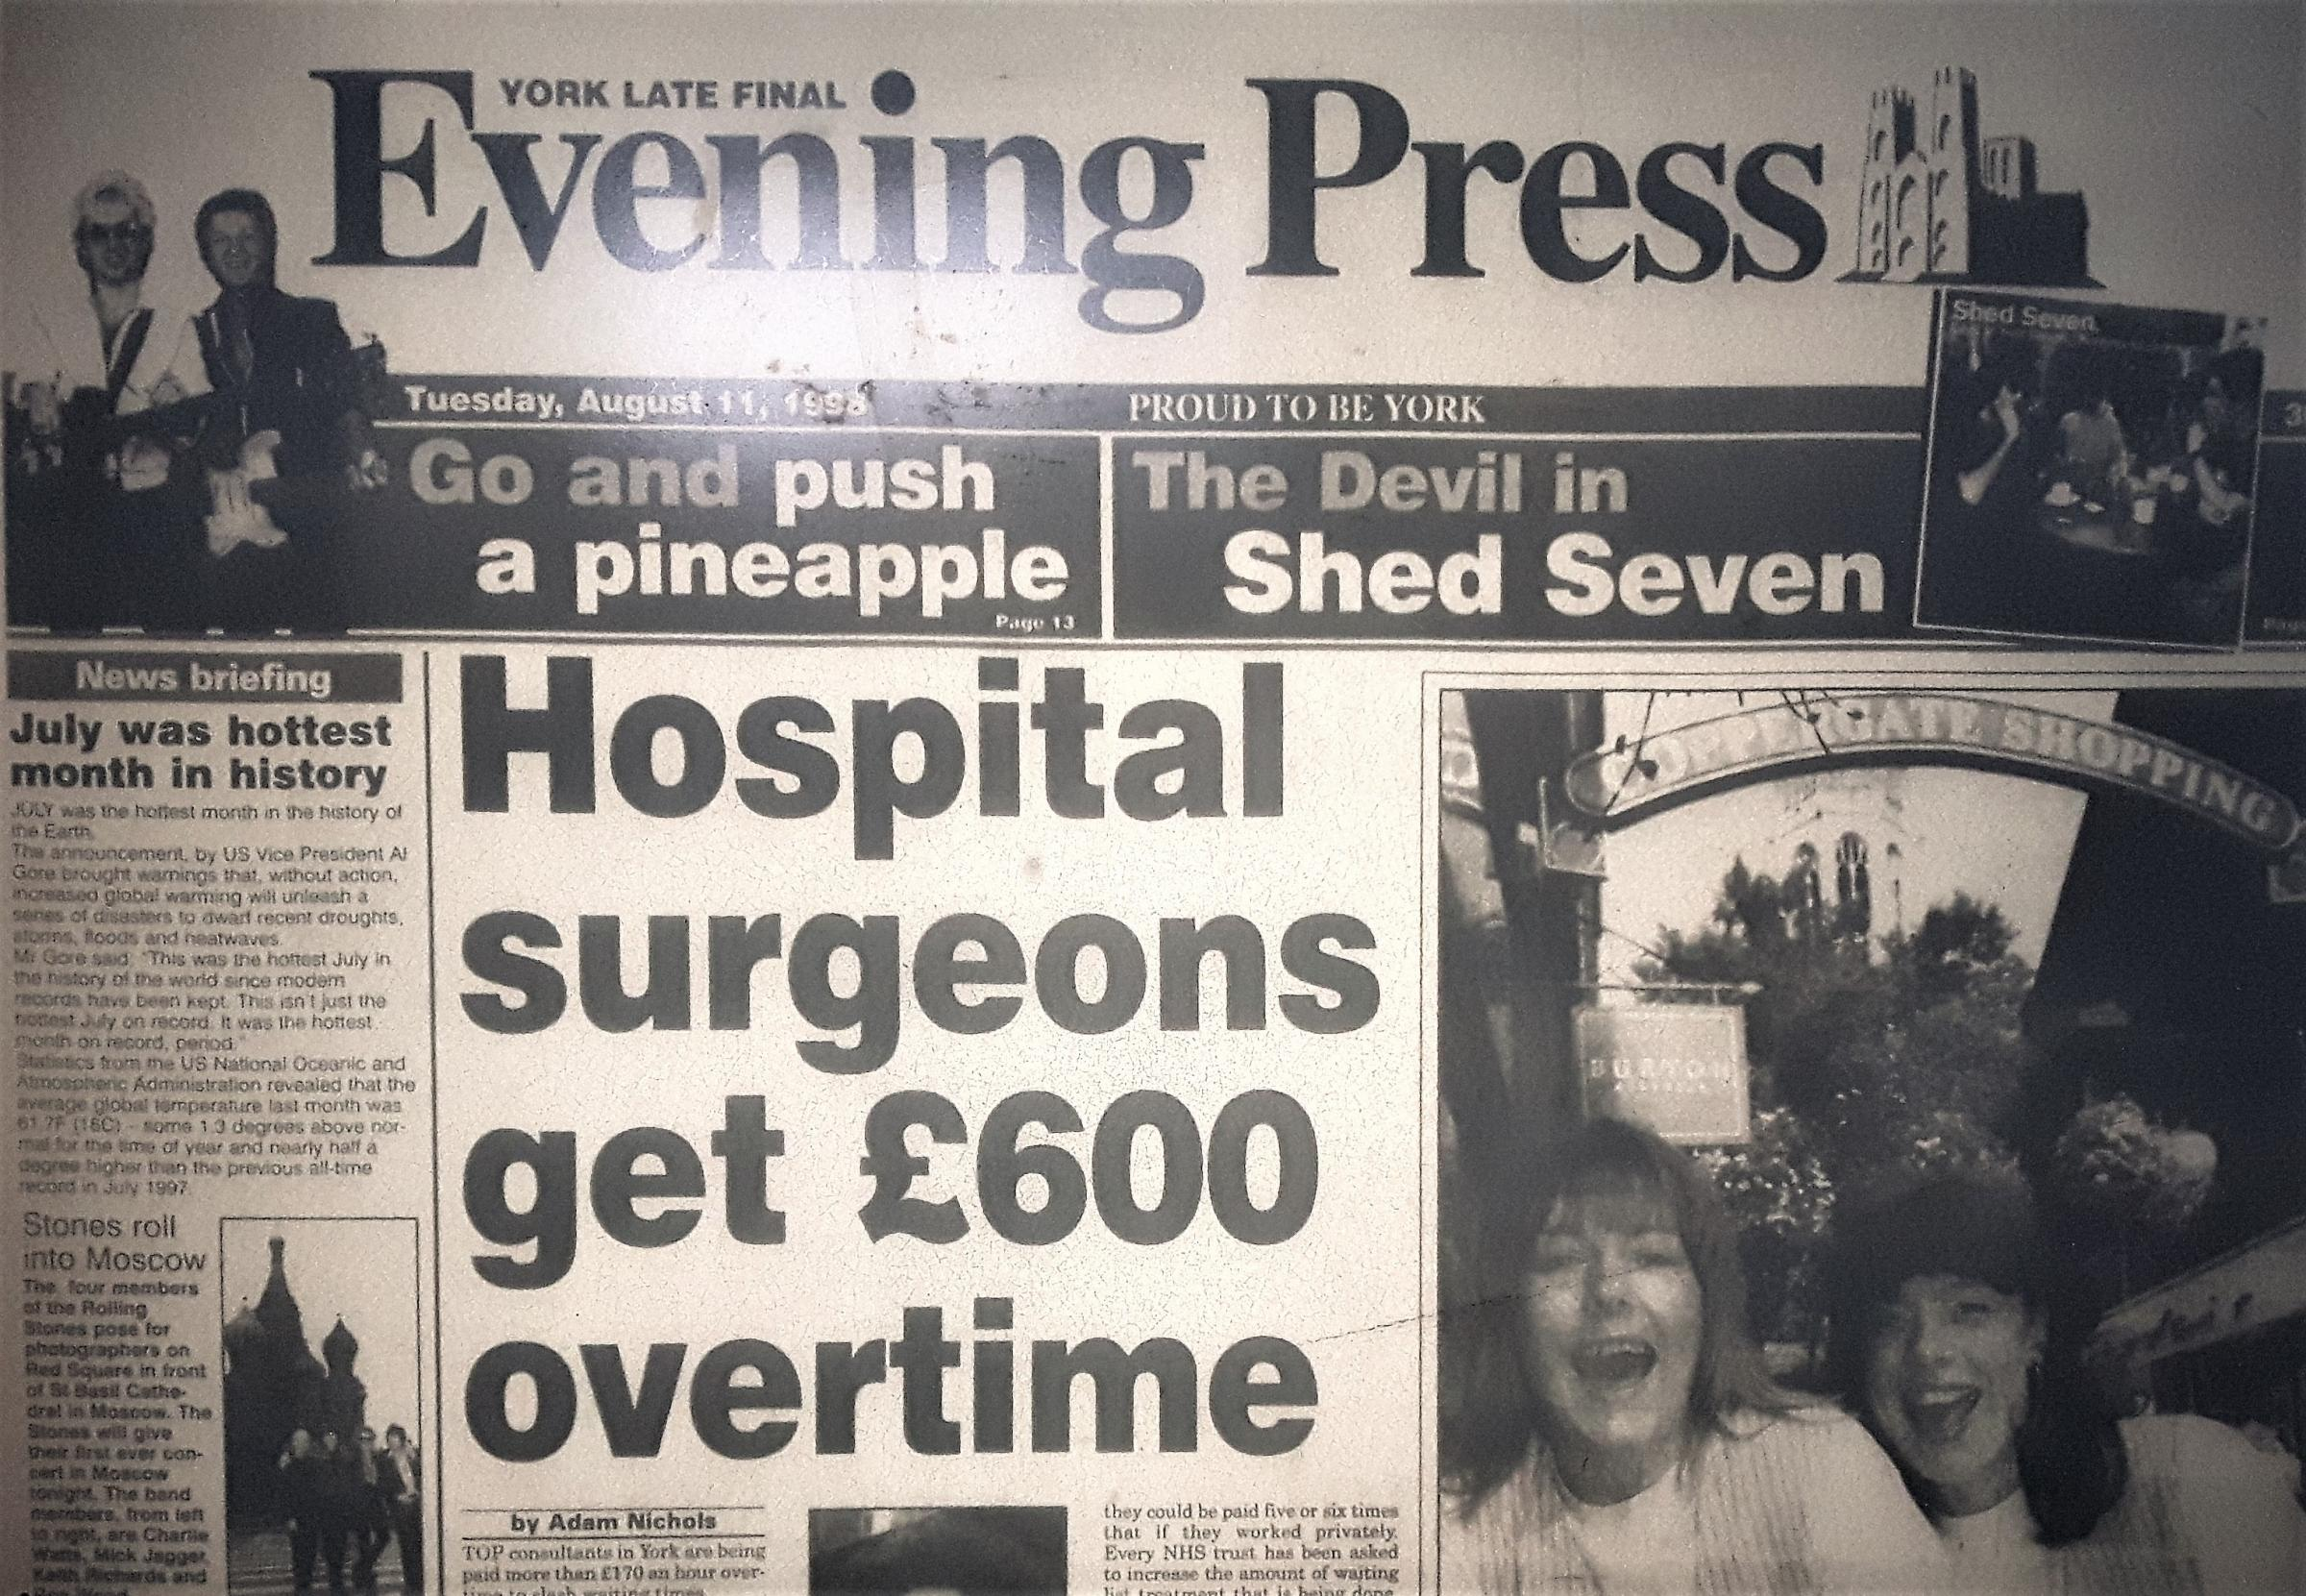 The Evening Press from page from August 11, 1998